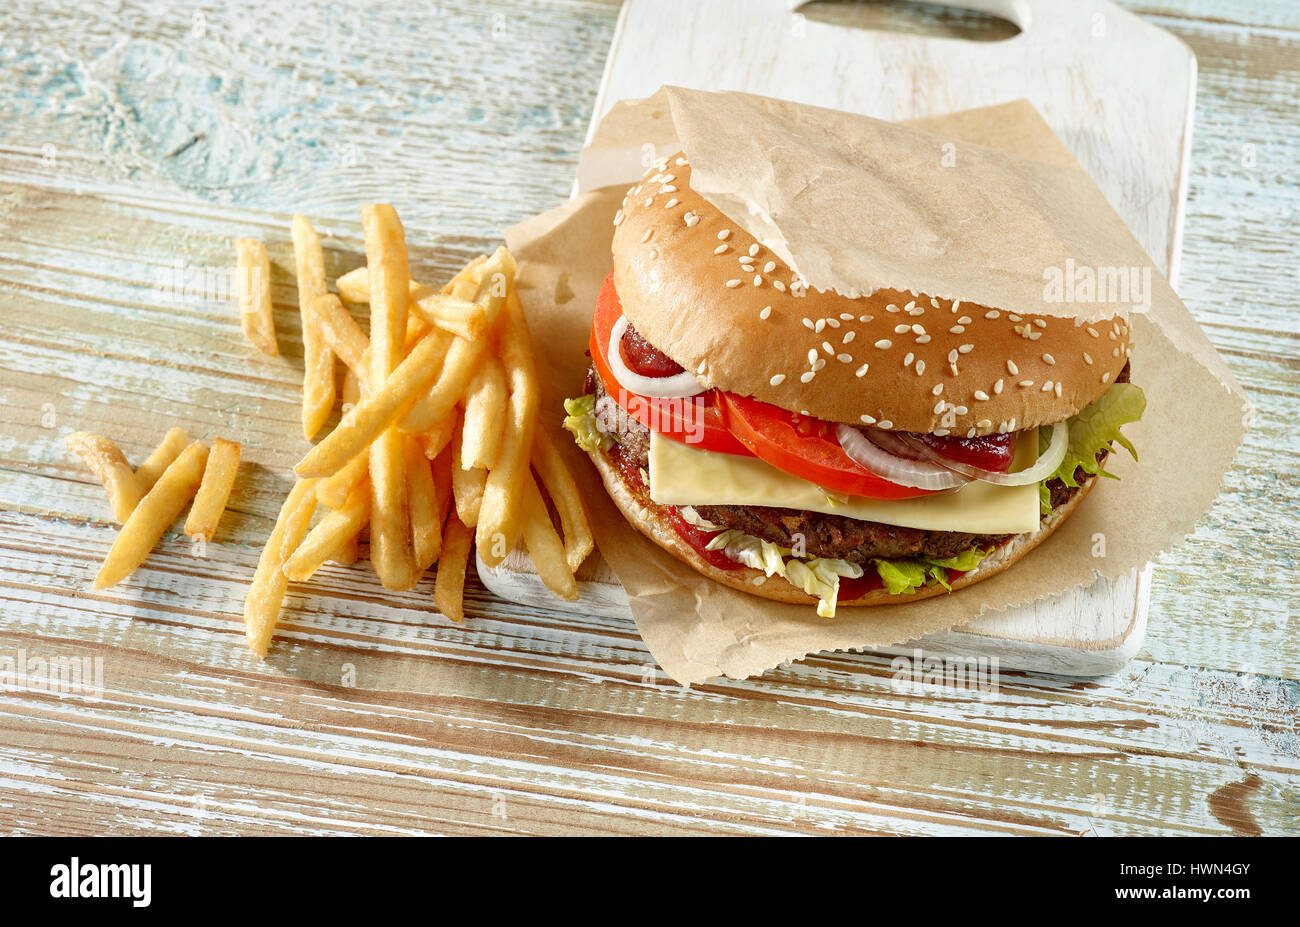 fresh tasty burger on wooden table - Stock Image